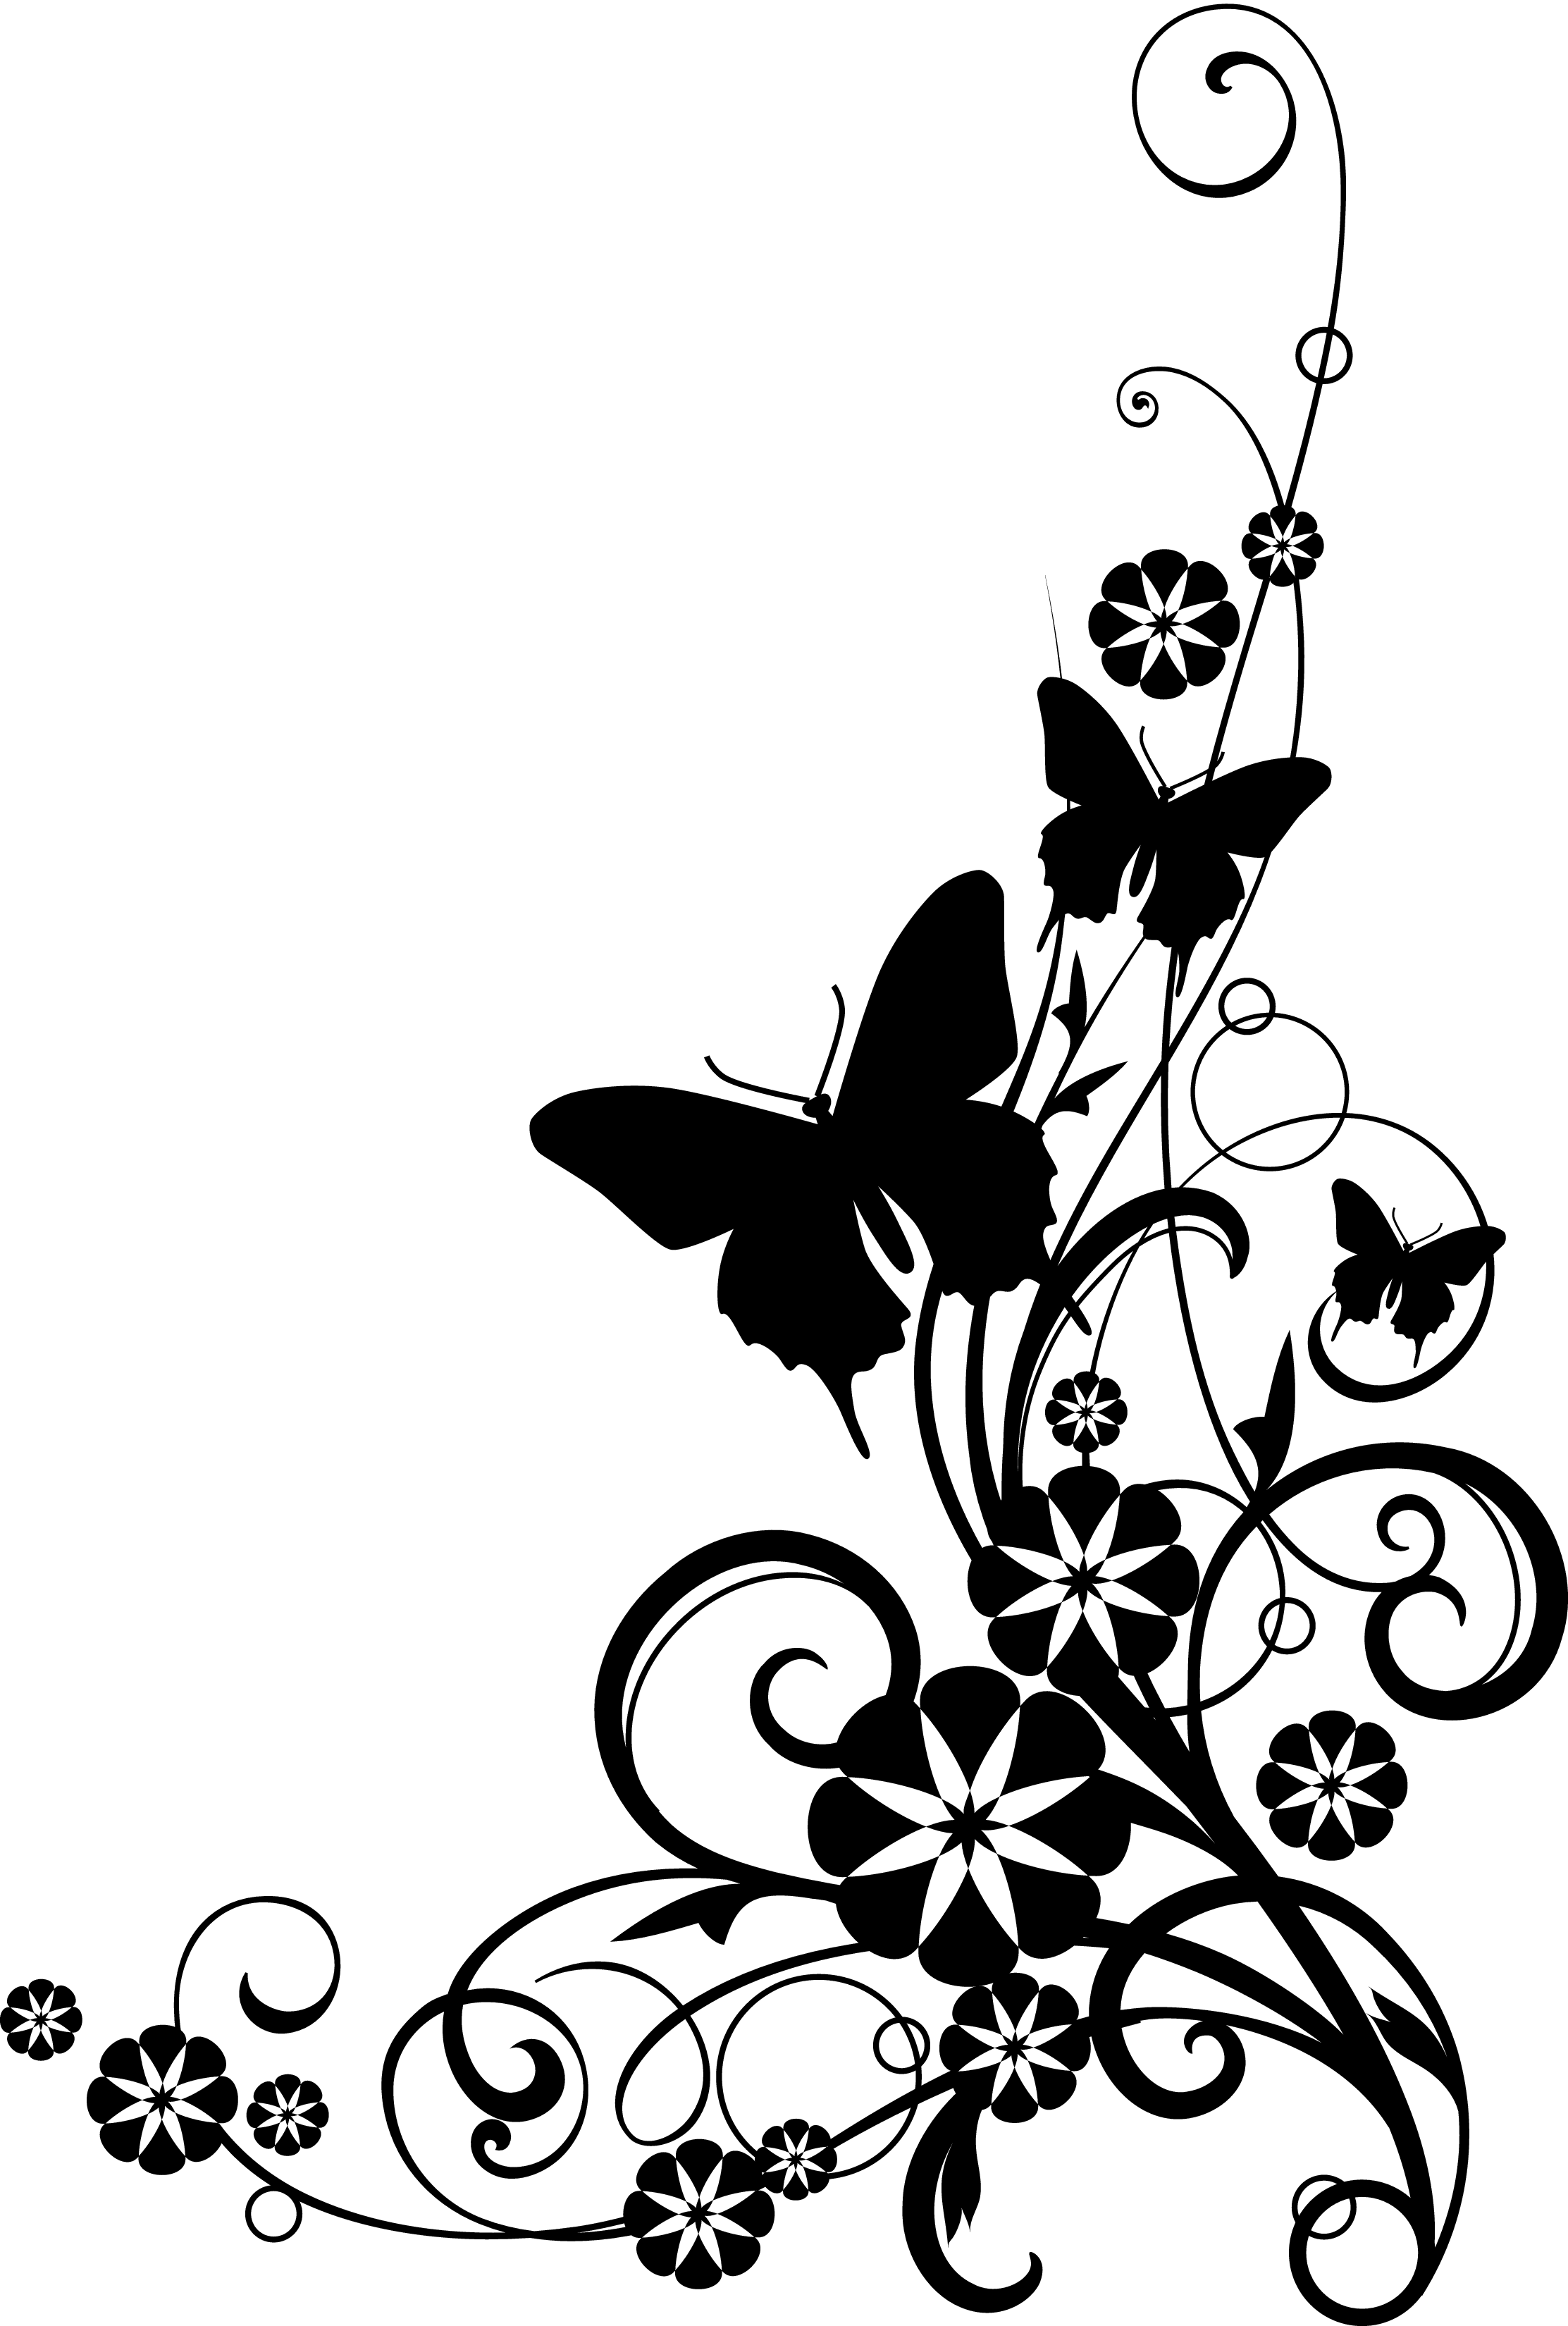 Vines clipart yellow flower. Wildflower sketch black and